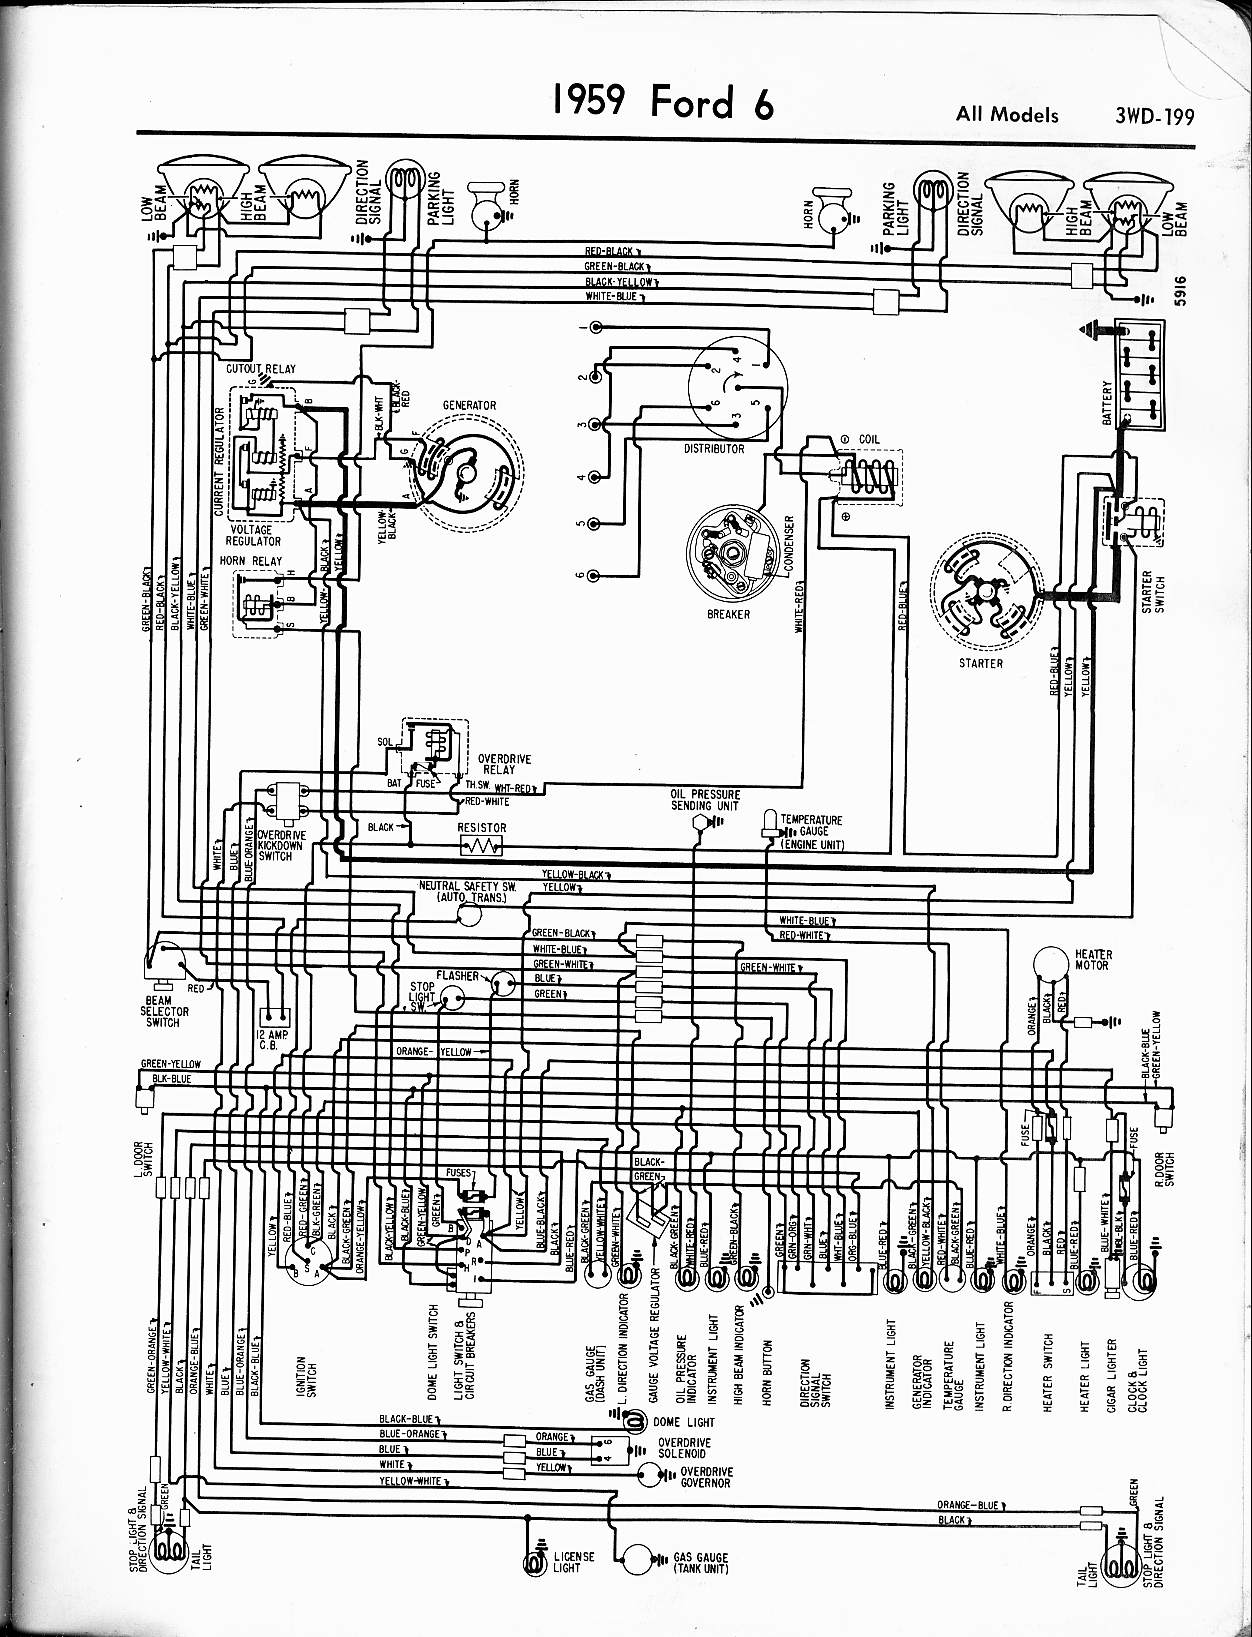 Ford Ranchero Headlight Switch Wiring Diagram